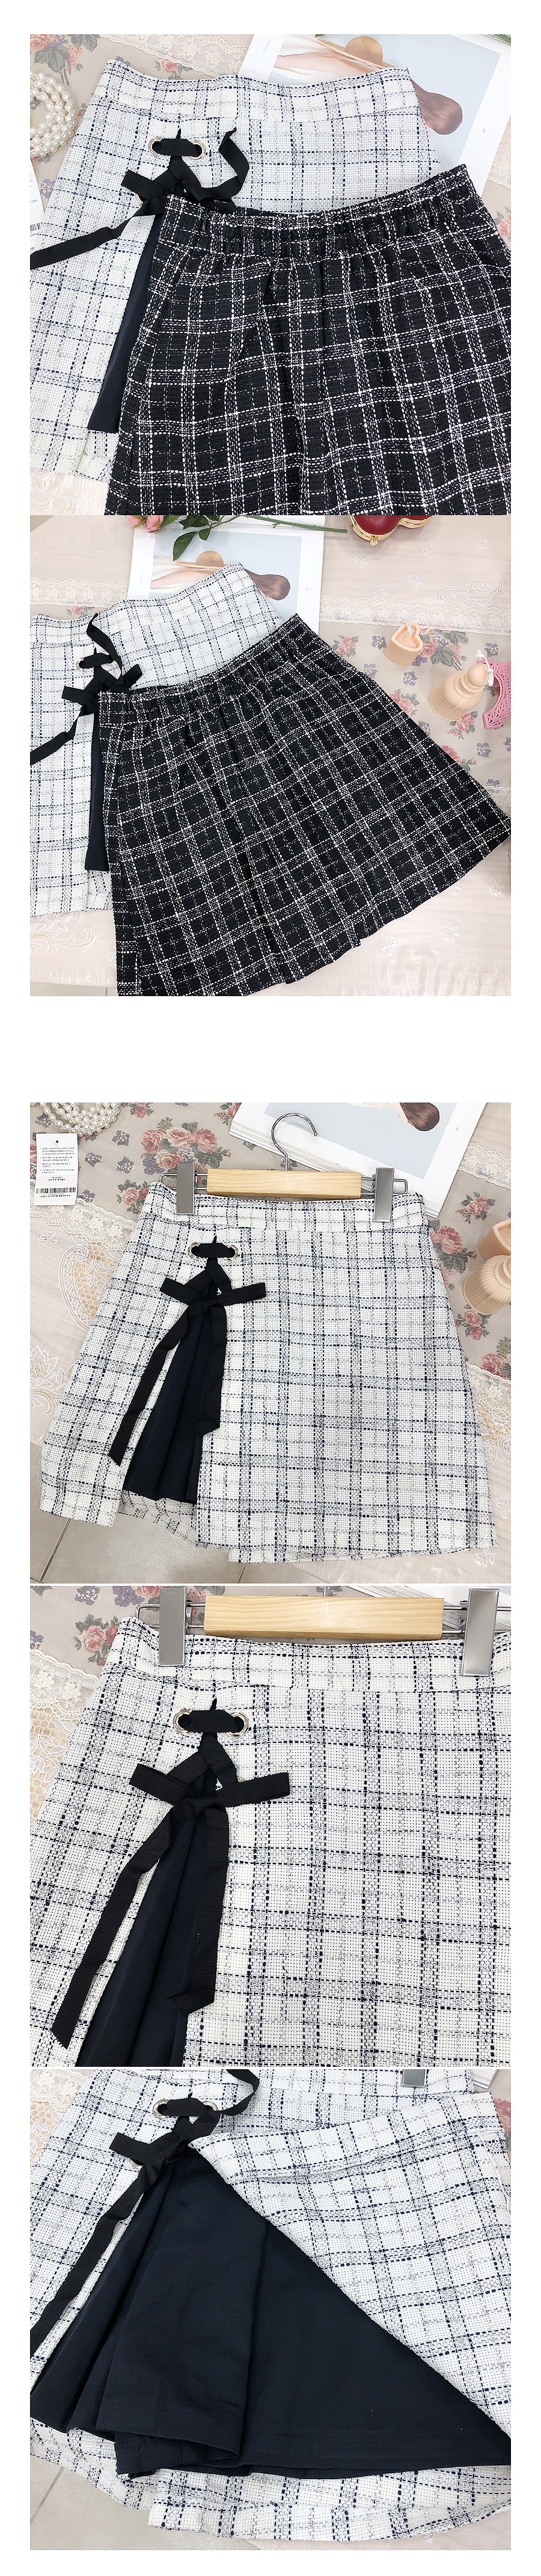 Single production ♥ tweed eyelet skirt pants